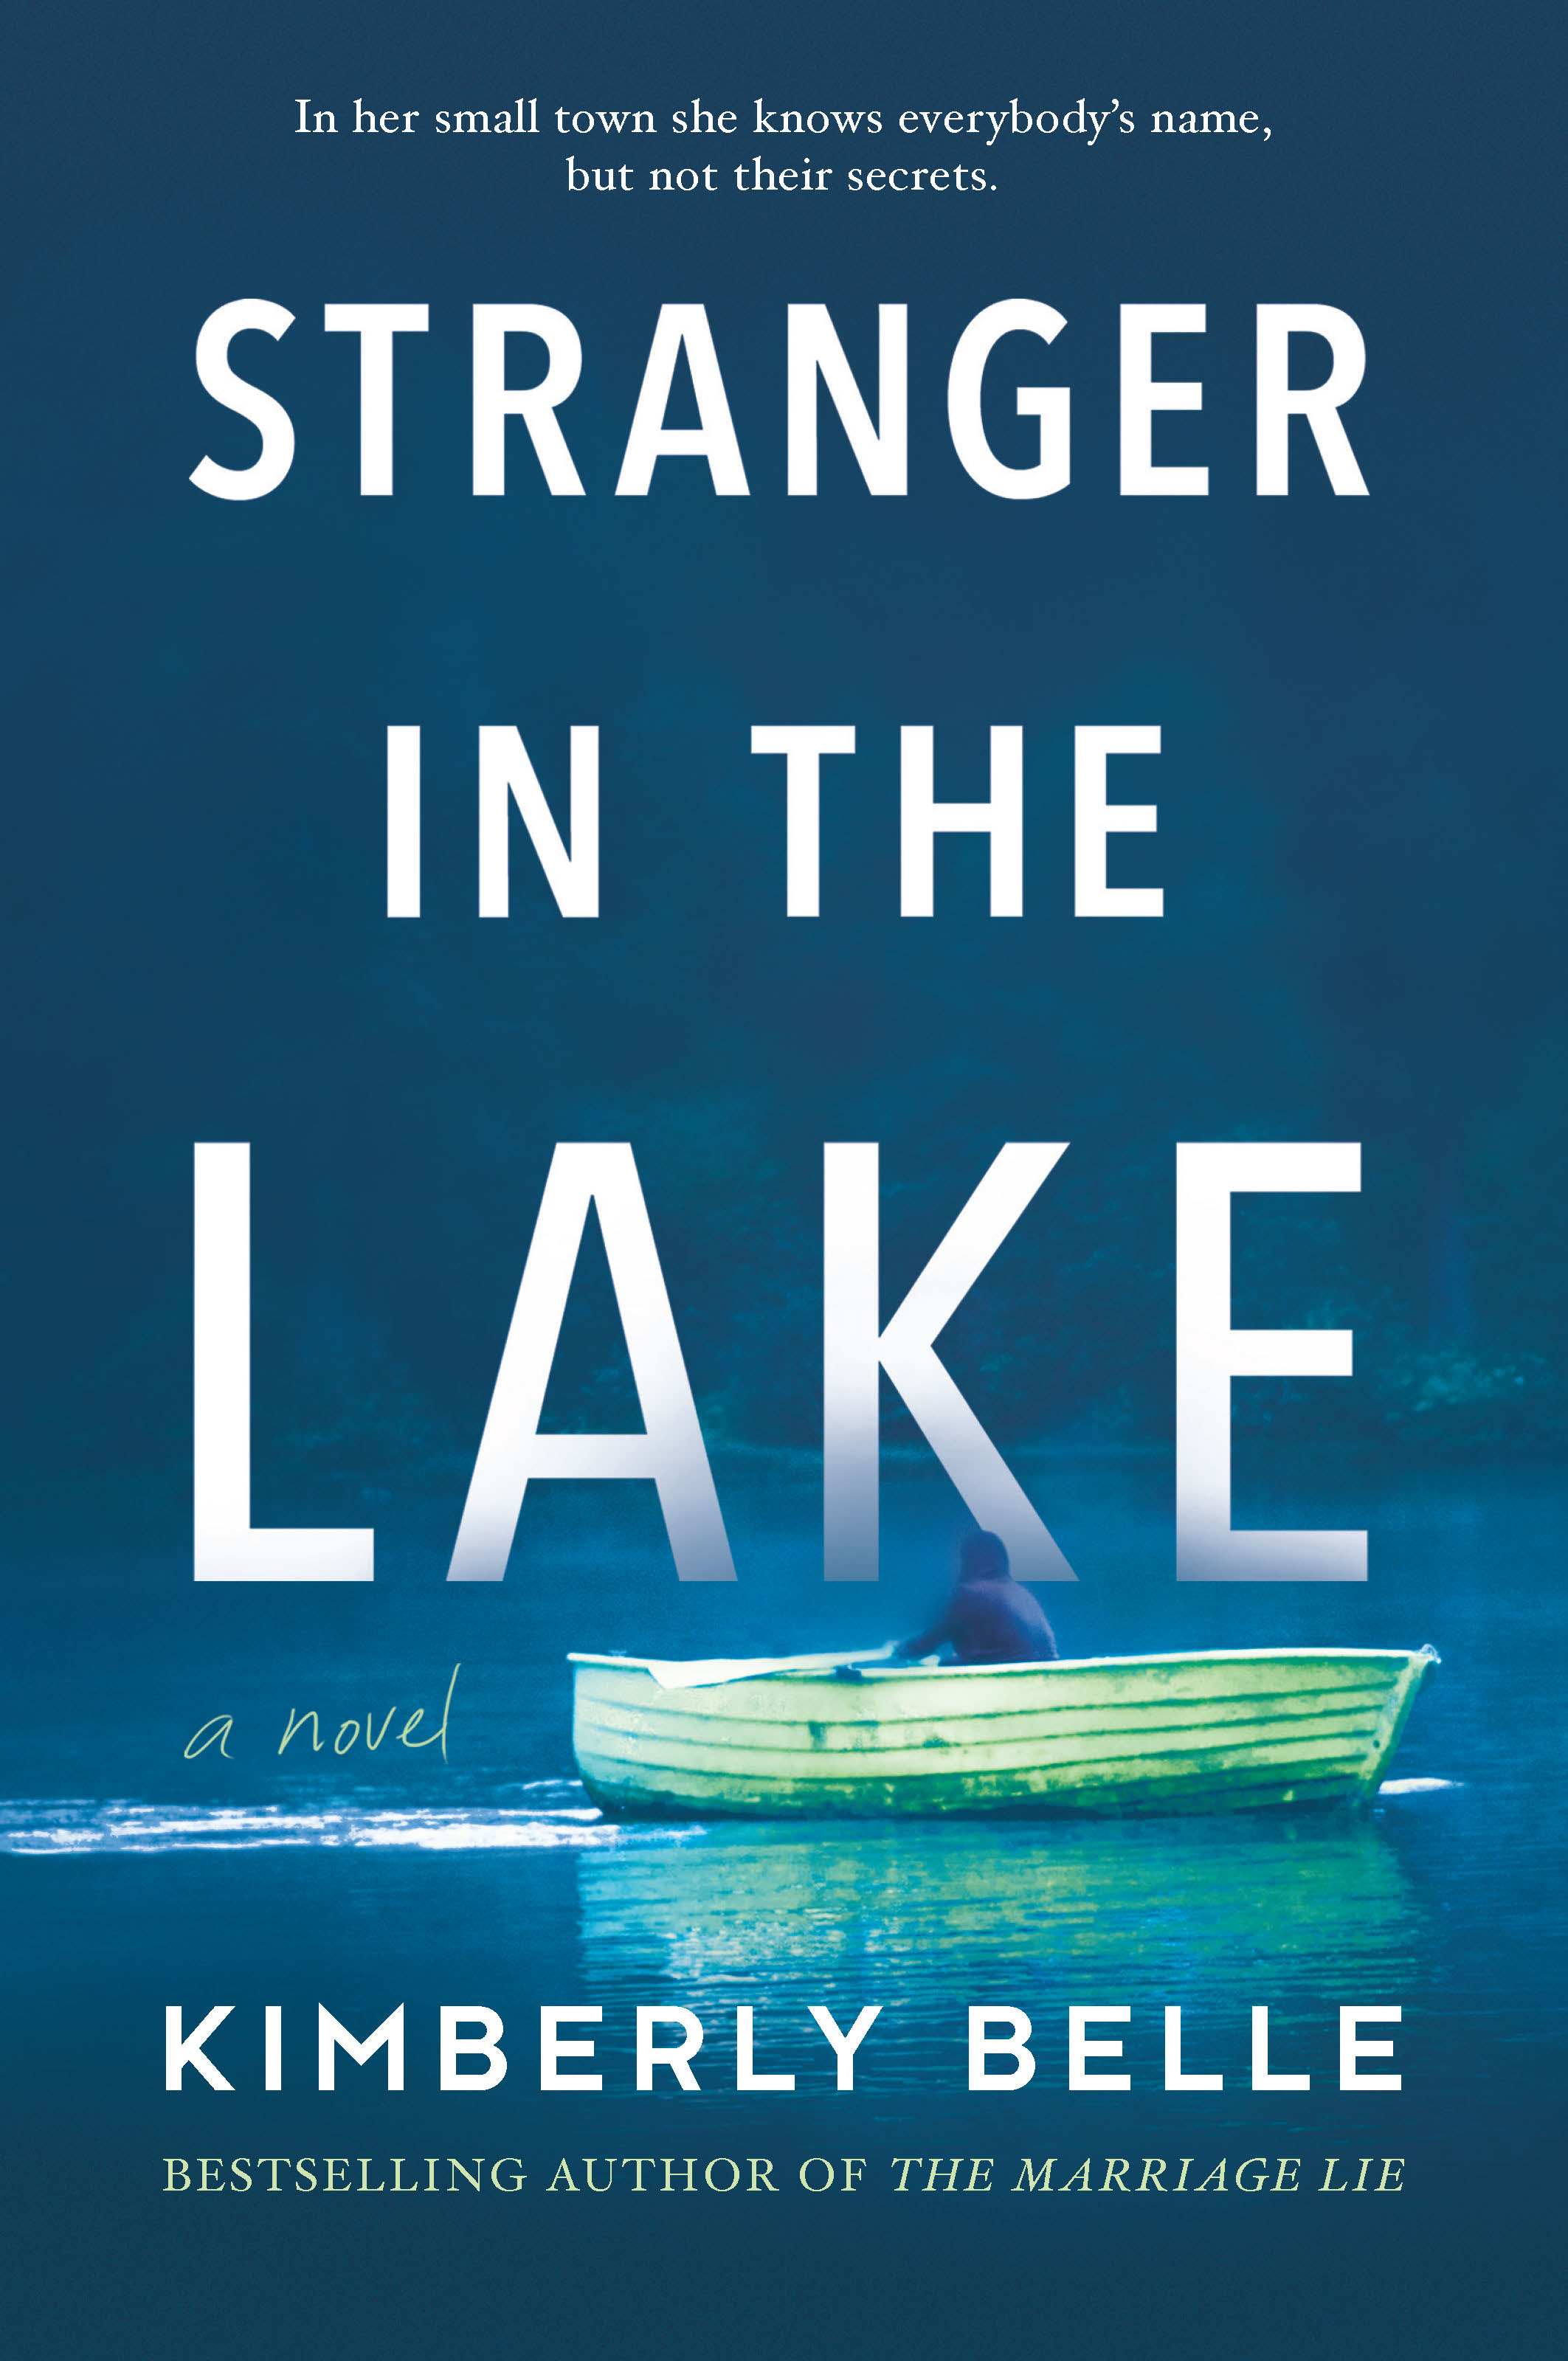 STRANGER IN THE LAKE cover